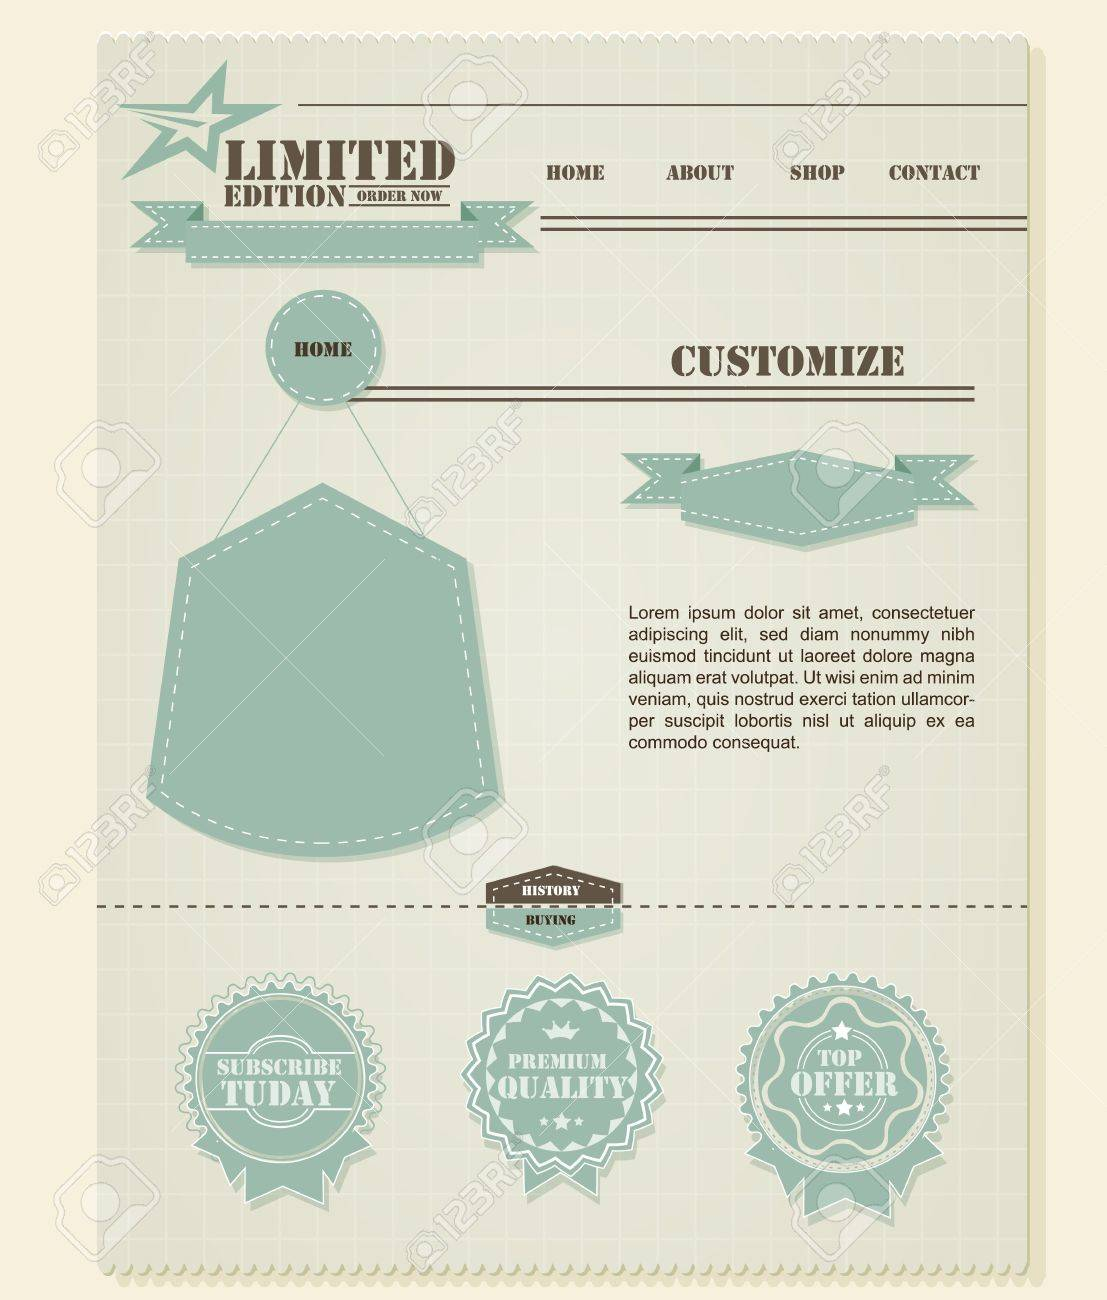 Retro Vintage Styled Website Template  | EPS10 Compatibility Required Stock Vector - 11194793